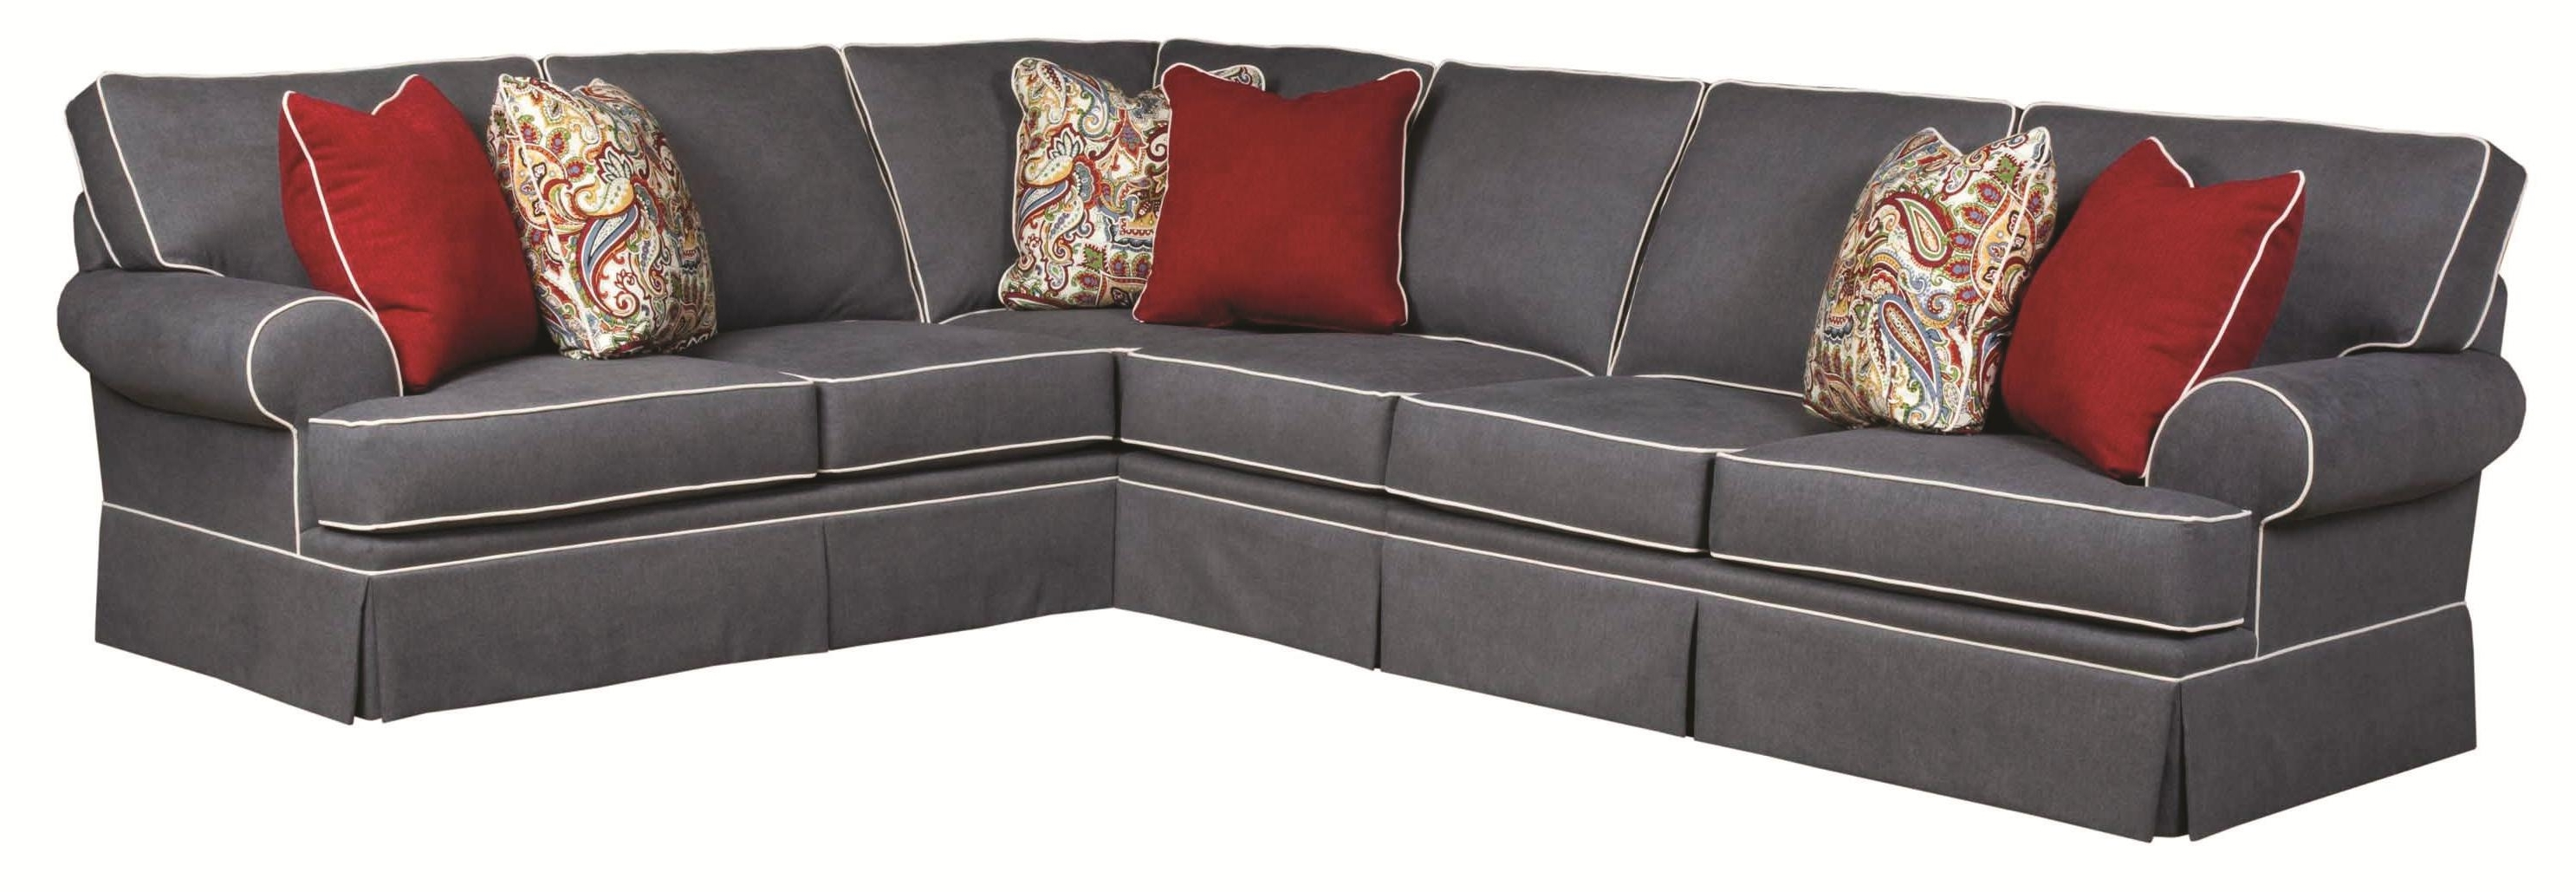 Popular Broyhill Sectional Sofas With Regard To Broyhill Furniture Emily Traditional 3 Piece Sectional Sofa With (View 14 of 20)